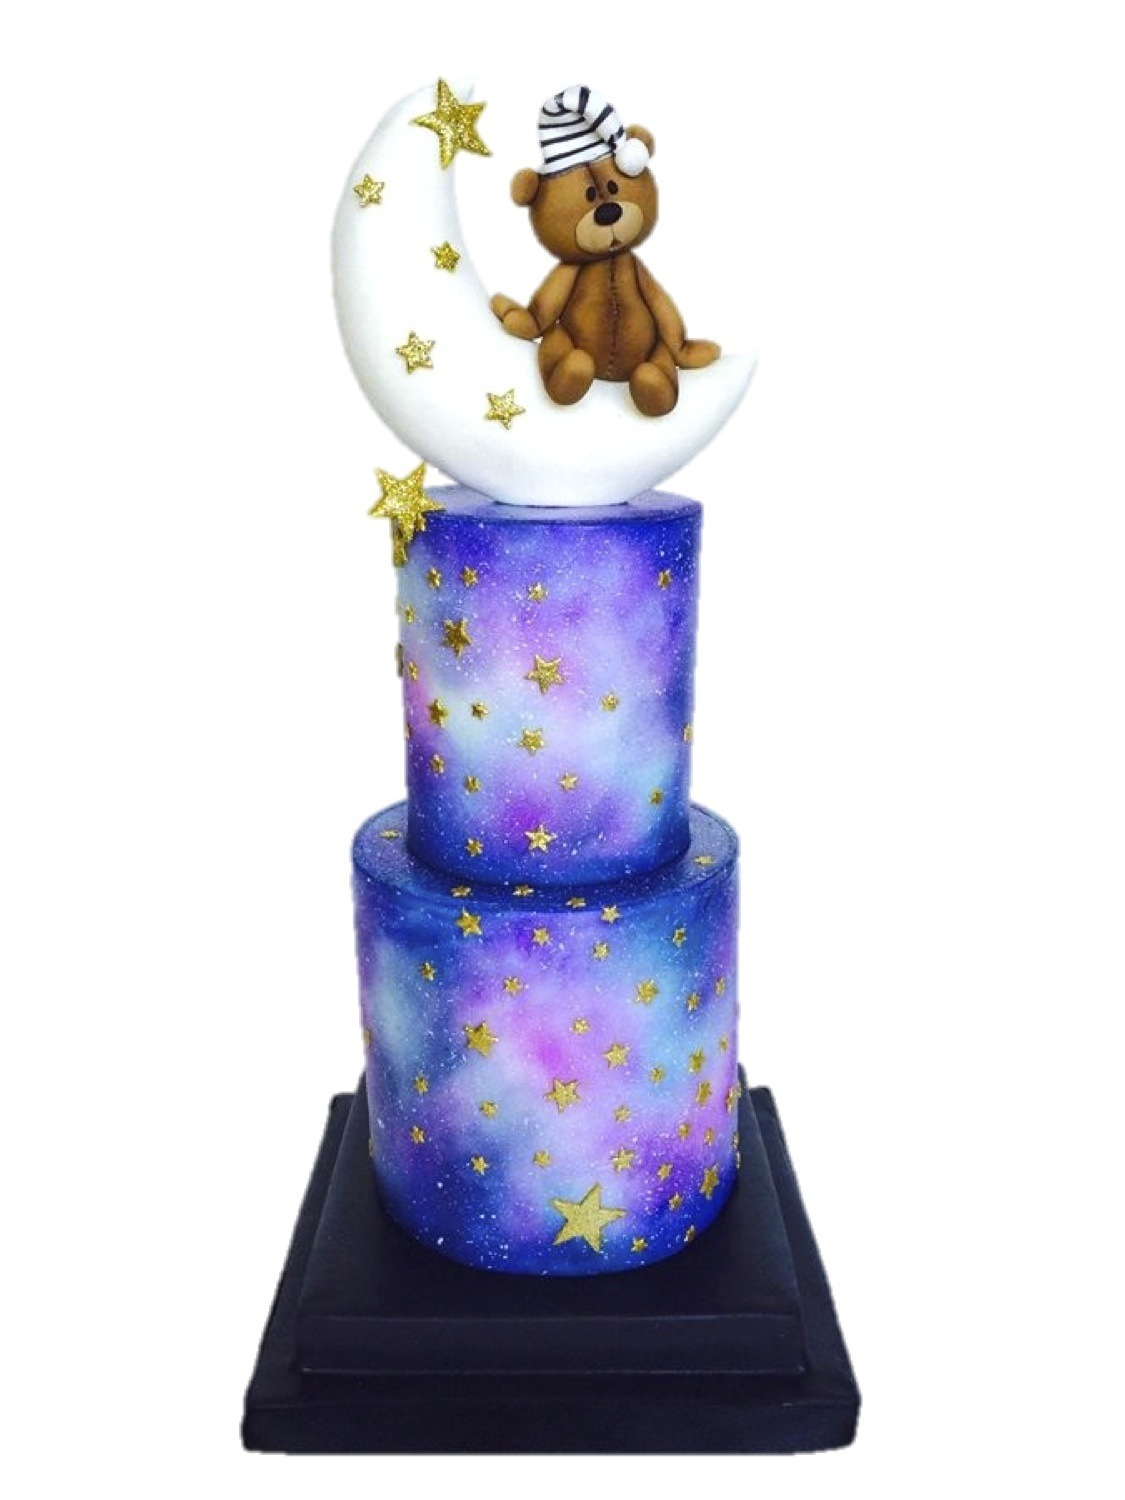 Watercolor cake with baby teddy bear